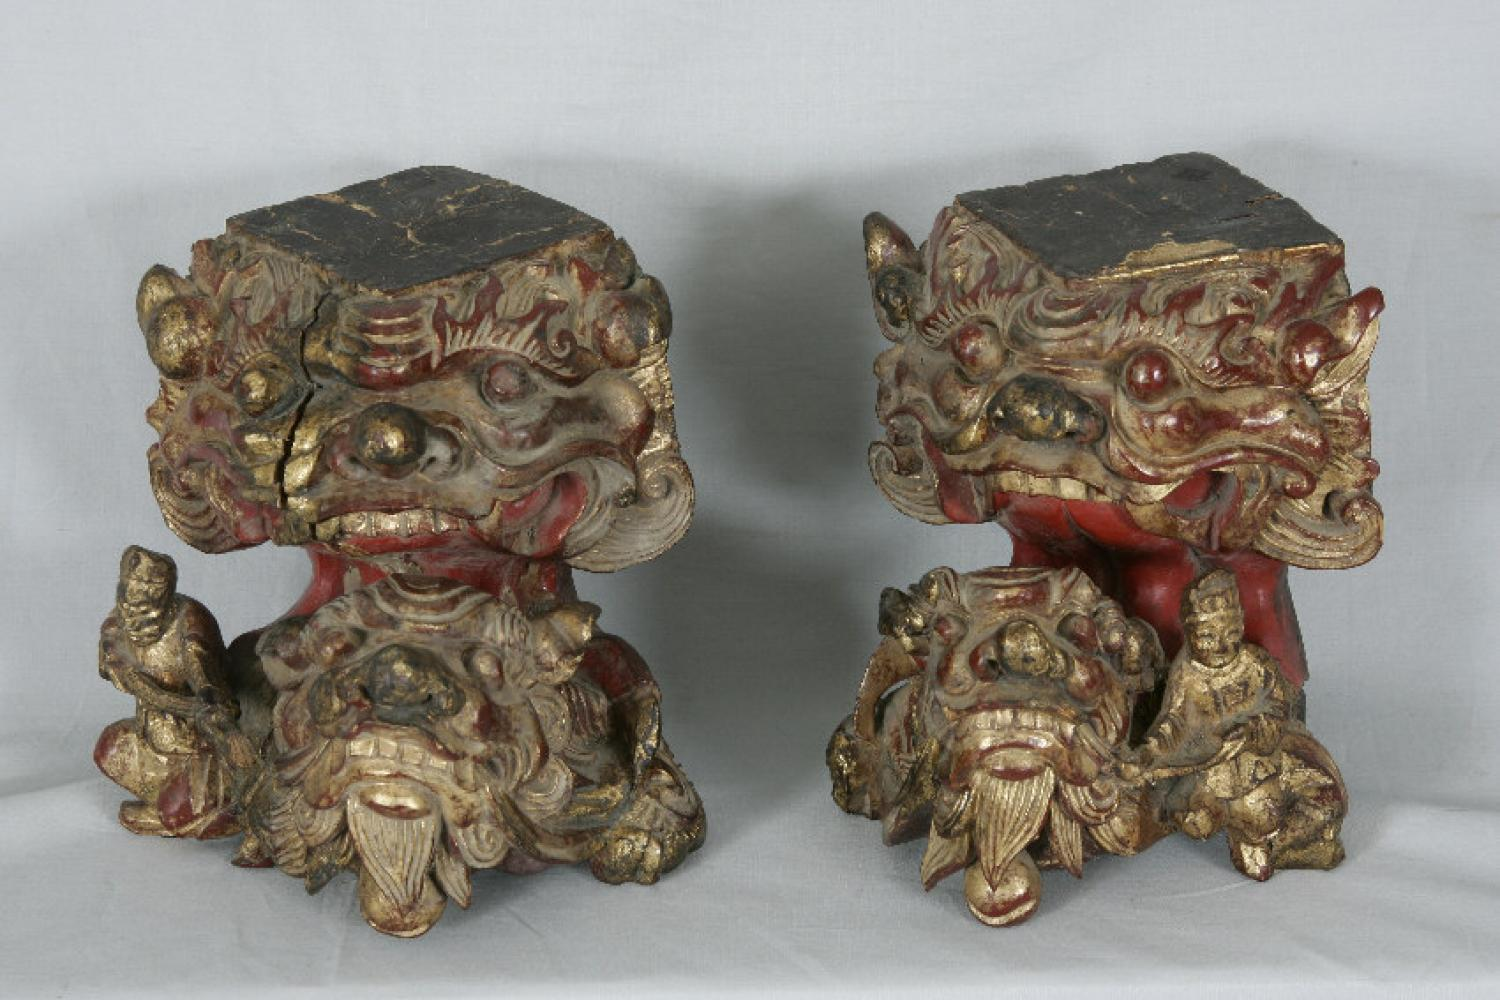 Chinese architectural wood carvings with figures and foo dogs c1800